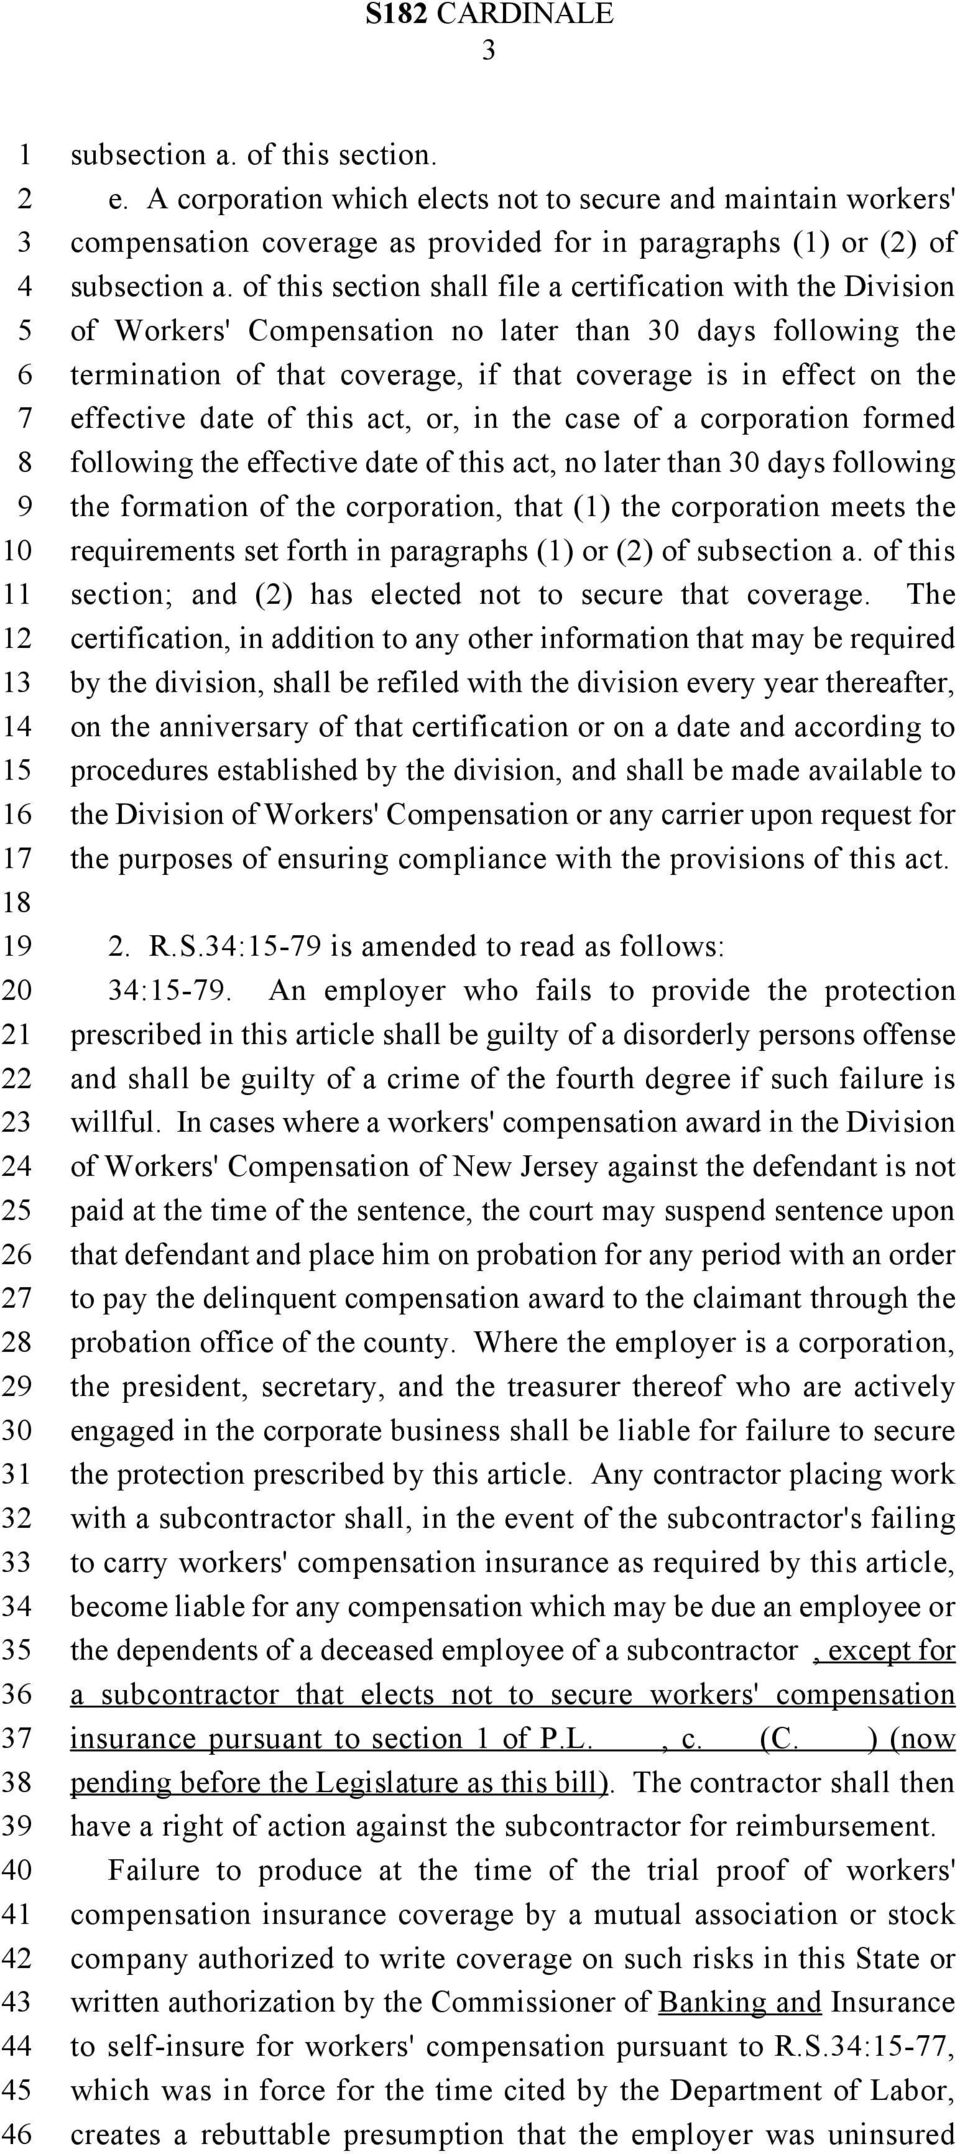 date of this act, or, in the case of a corporation formed following the effective date of this act, no later than 0 days following the formation of the corporation, that () the corporation meets the